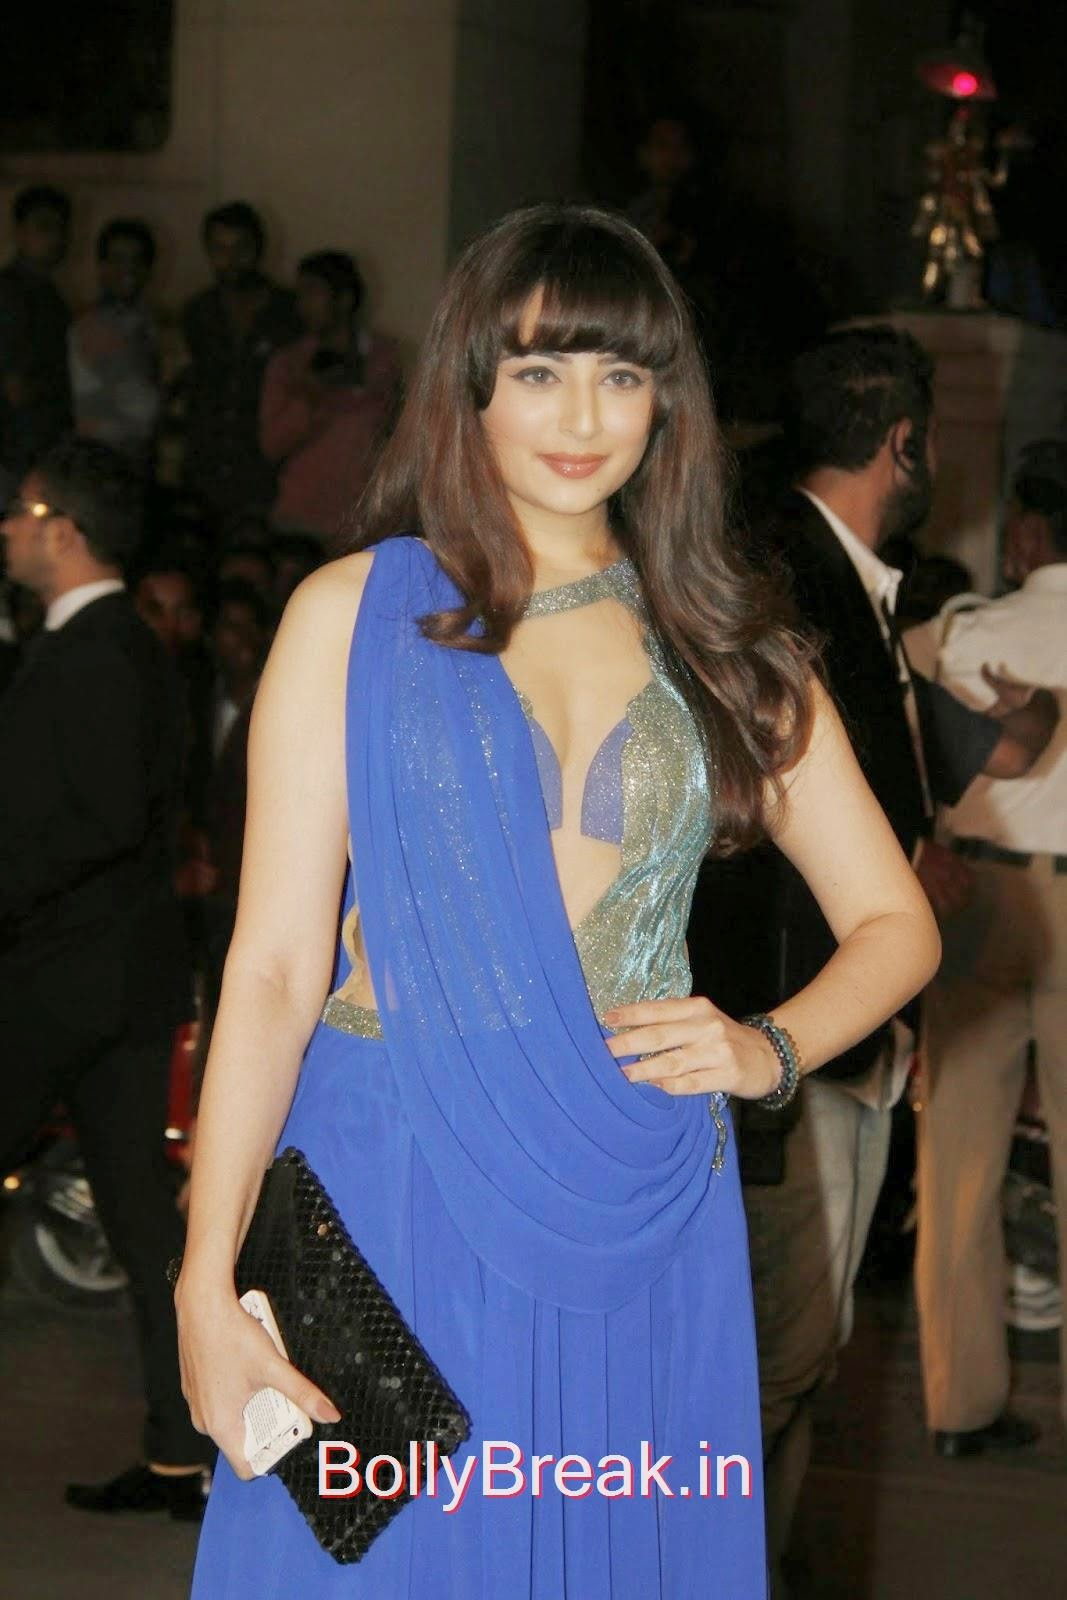 FF+5, Zoya Afroz Hot HD Pics in Blue Dress From Awards Night